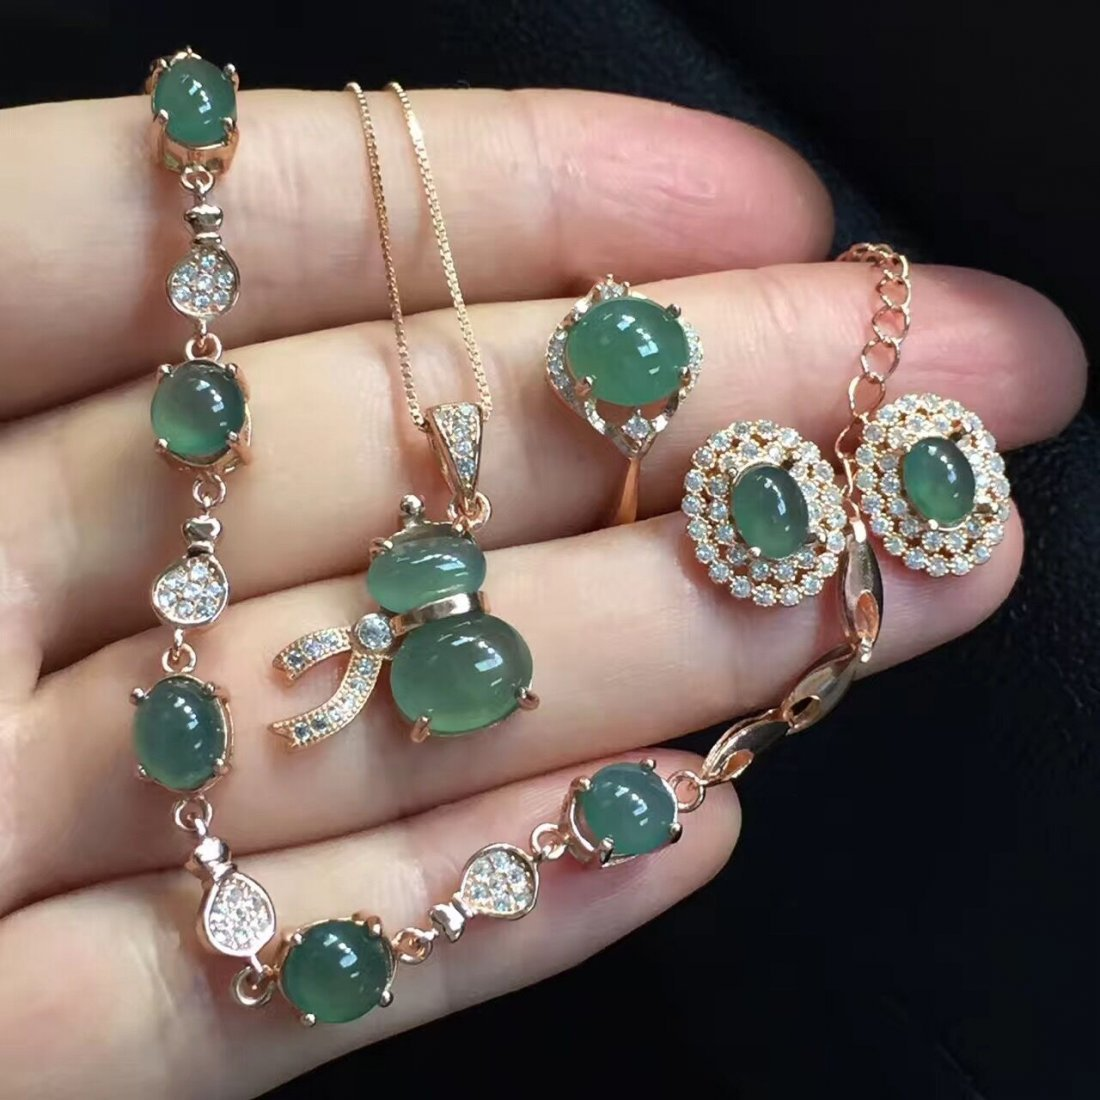 18k gold inlaid emerald Clear water necklace four sets - 2